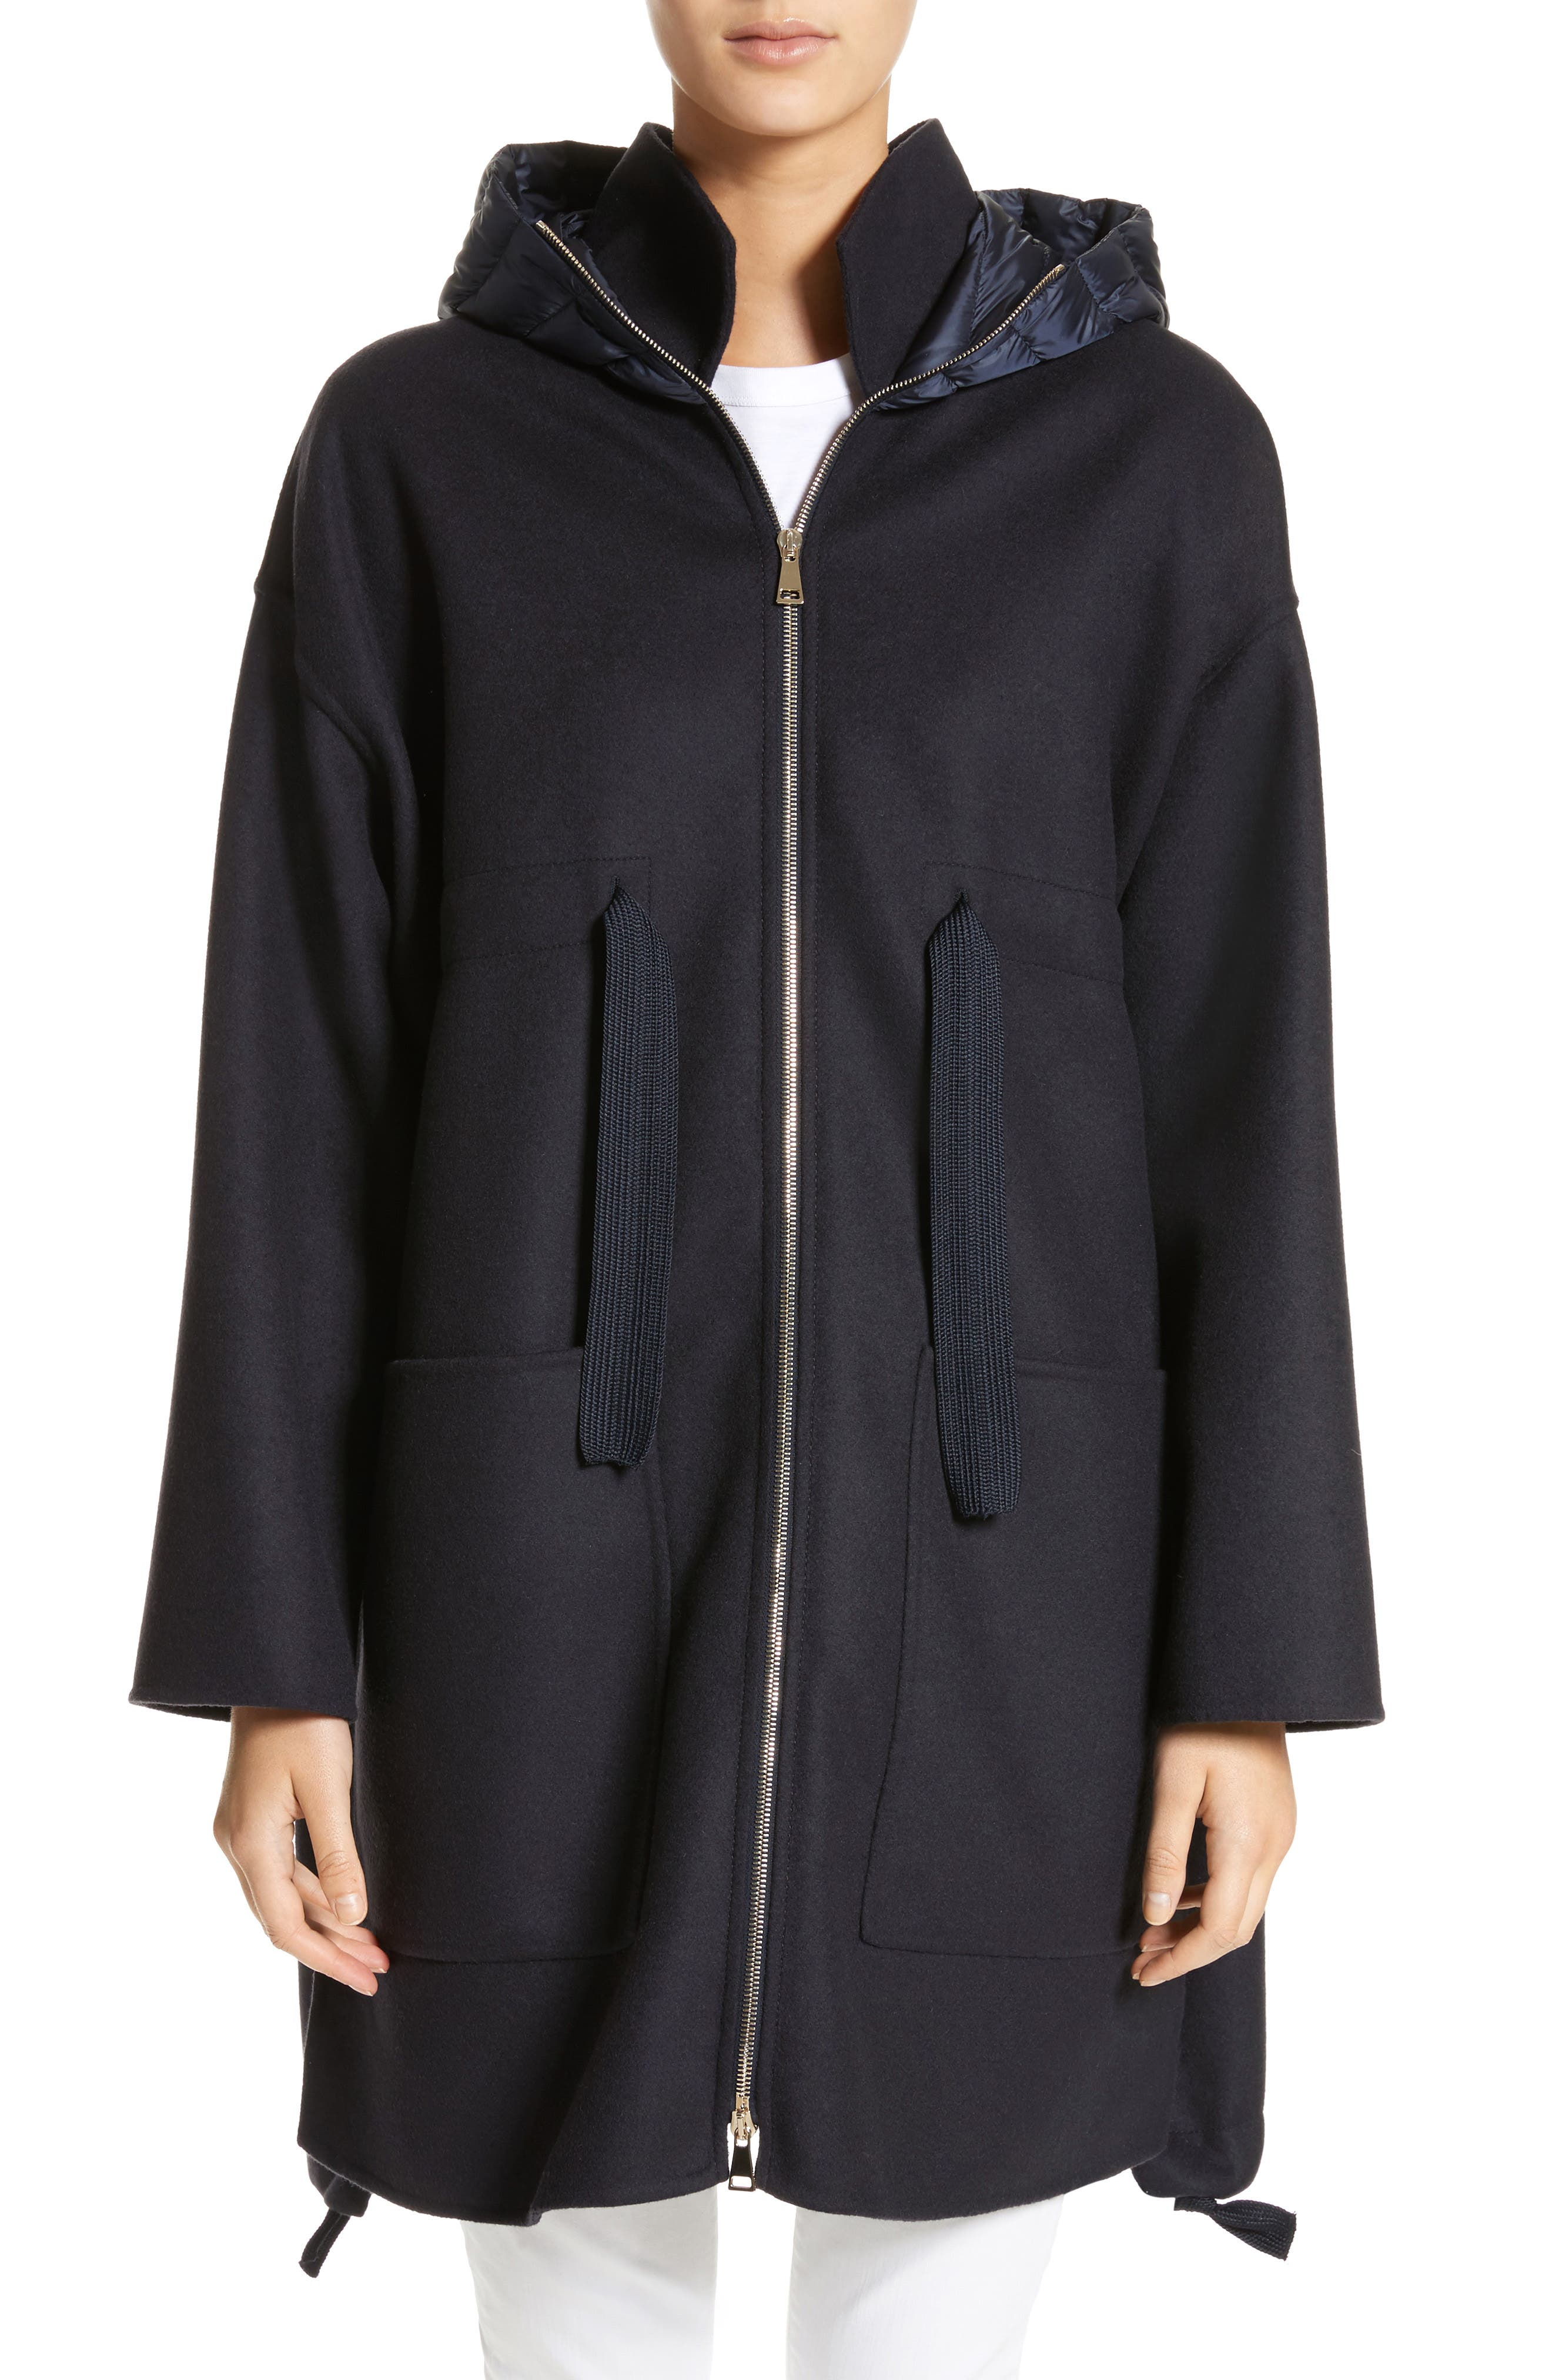 Grenat Wool & Cashmere Hooded Jacket,                             Main thumbnail 1, color,                             Navy